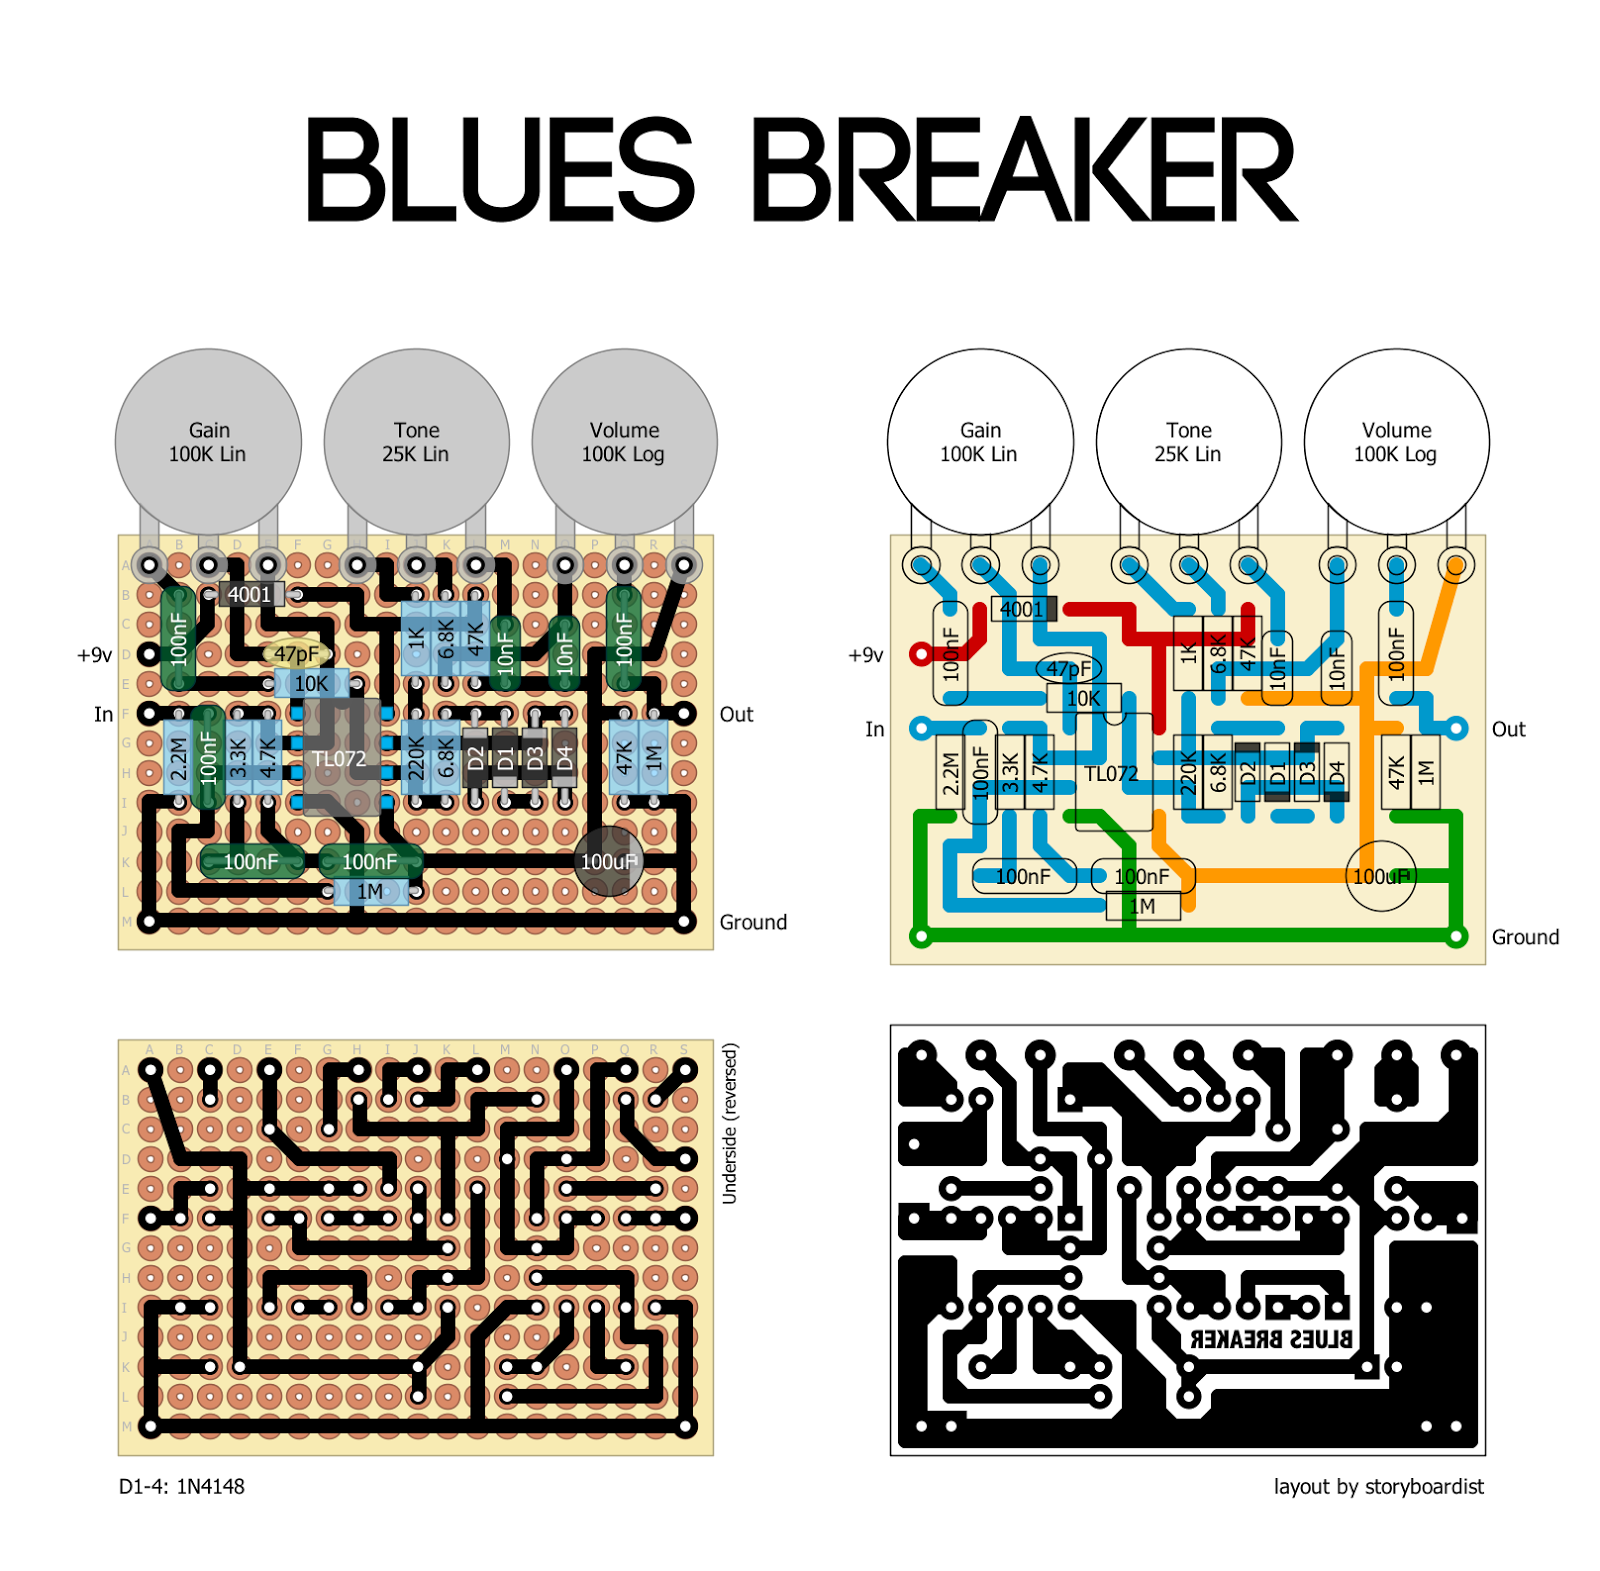 Perf and PCB Effects Layouts: Marshall Blues Breaker Mk.I Marshall Bluesbreaker Schematic on marshall 2061x, marshall dsl schematic, marshall combo, marshall jtm 45 schematic, marshall jcm 900 schematic, marshall class 5 schematic, marshall 1959 schematic, marshall dsl5c schematic, marshall jcm 2000 schematic, marshall jmp schematic, marshall jcm800 layout, marshall jcm800 schematic, marshall bluesbreaker amp, marshall blues breaker, marshall 2203 schematic, marshall 1962 schematic, marshall jtm50 schematic, marshall 18 watt schematic, marshall amp schematic, marshall 1987x schematic,